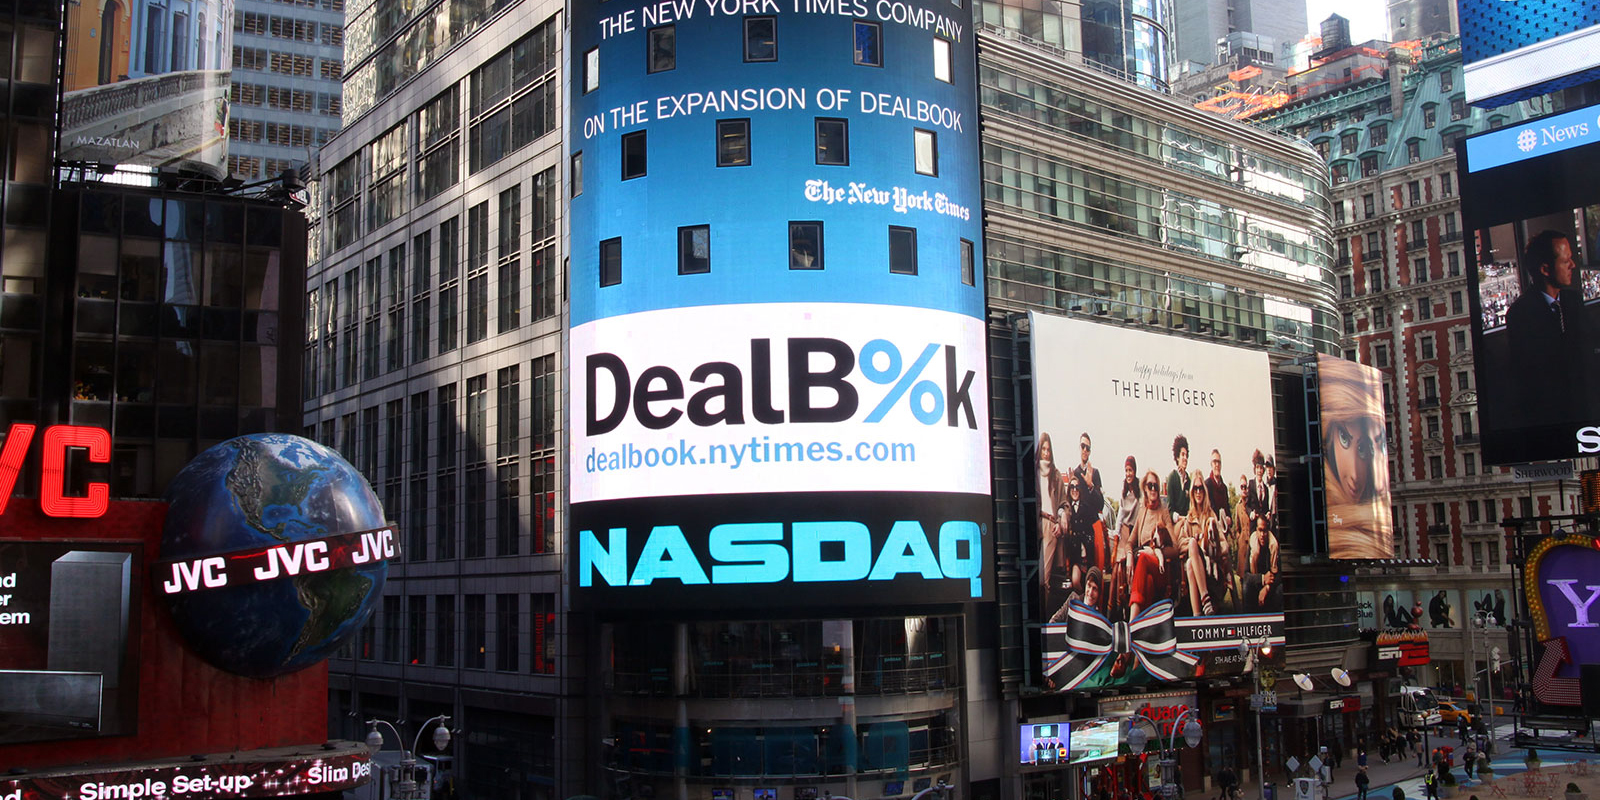 DealBook_case1